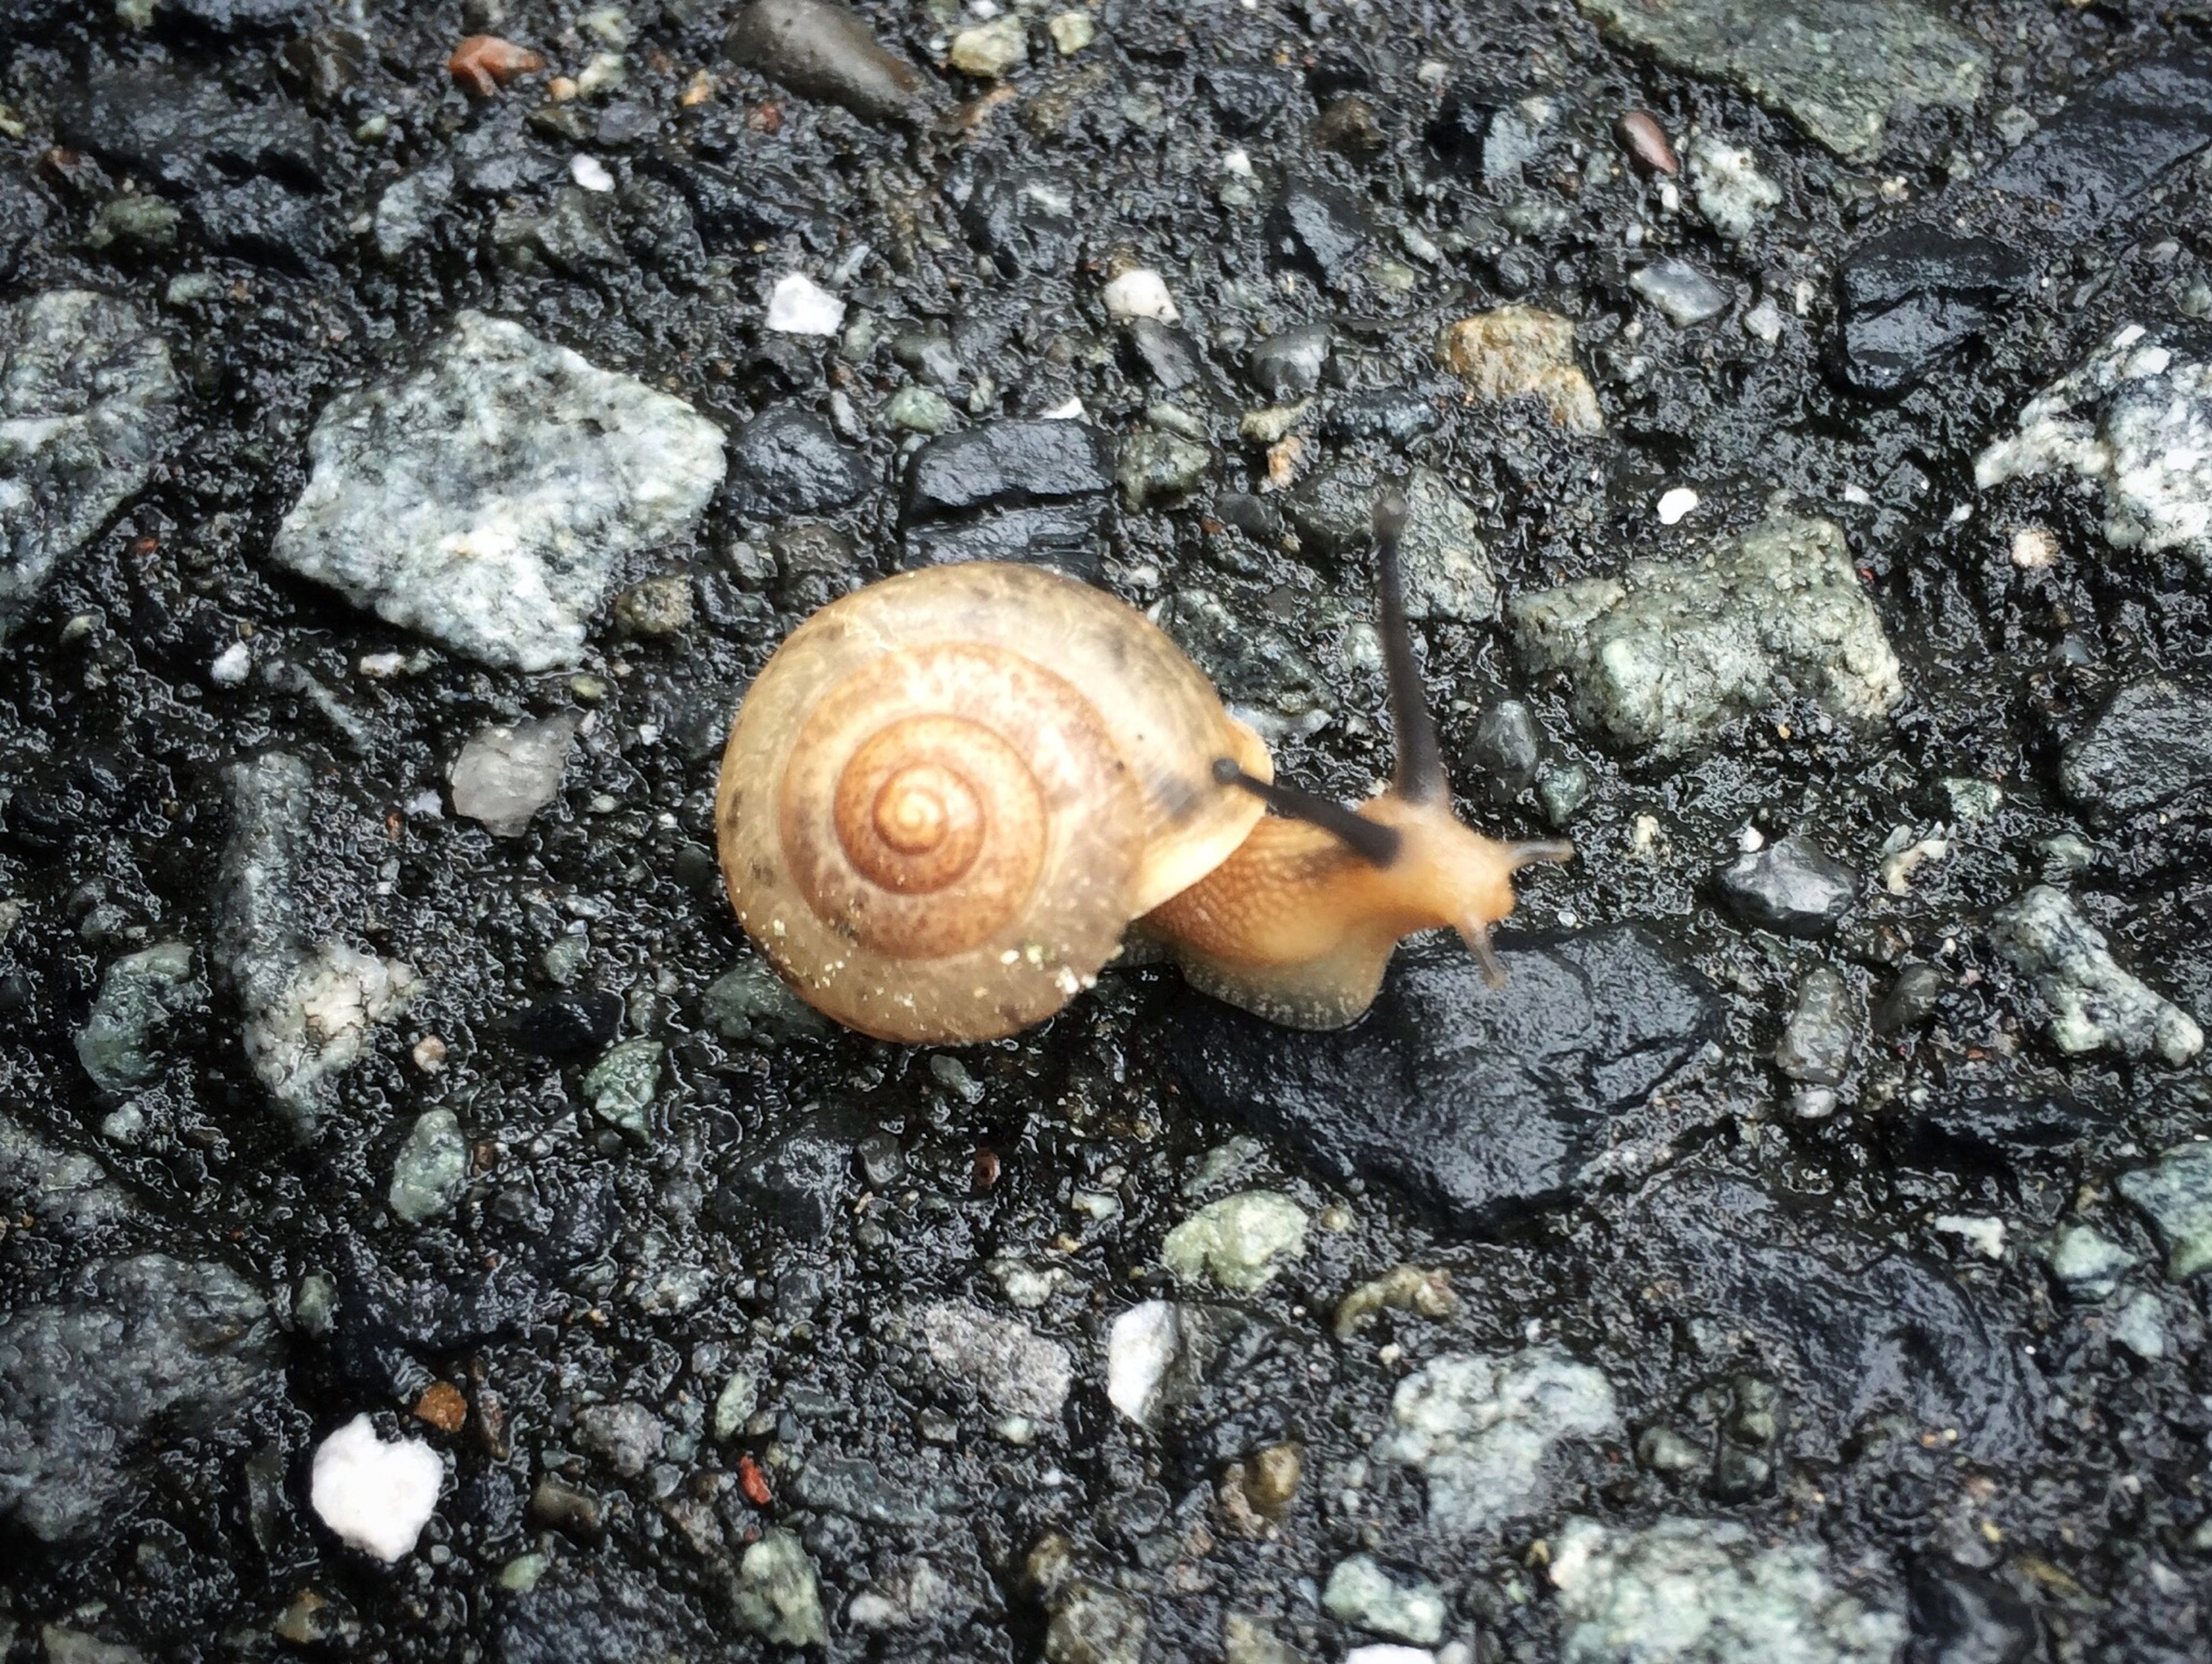 high angle view, animal shell, seashell, nature, snail, fragility, close-up, shell, fungus, ground, outdoors, directly above, day, mushroom, natural pattern, animal themes, stone - object, wildlife, rock - object, beauty in nature